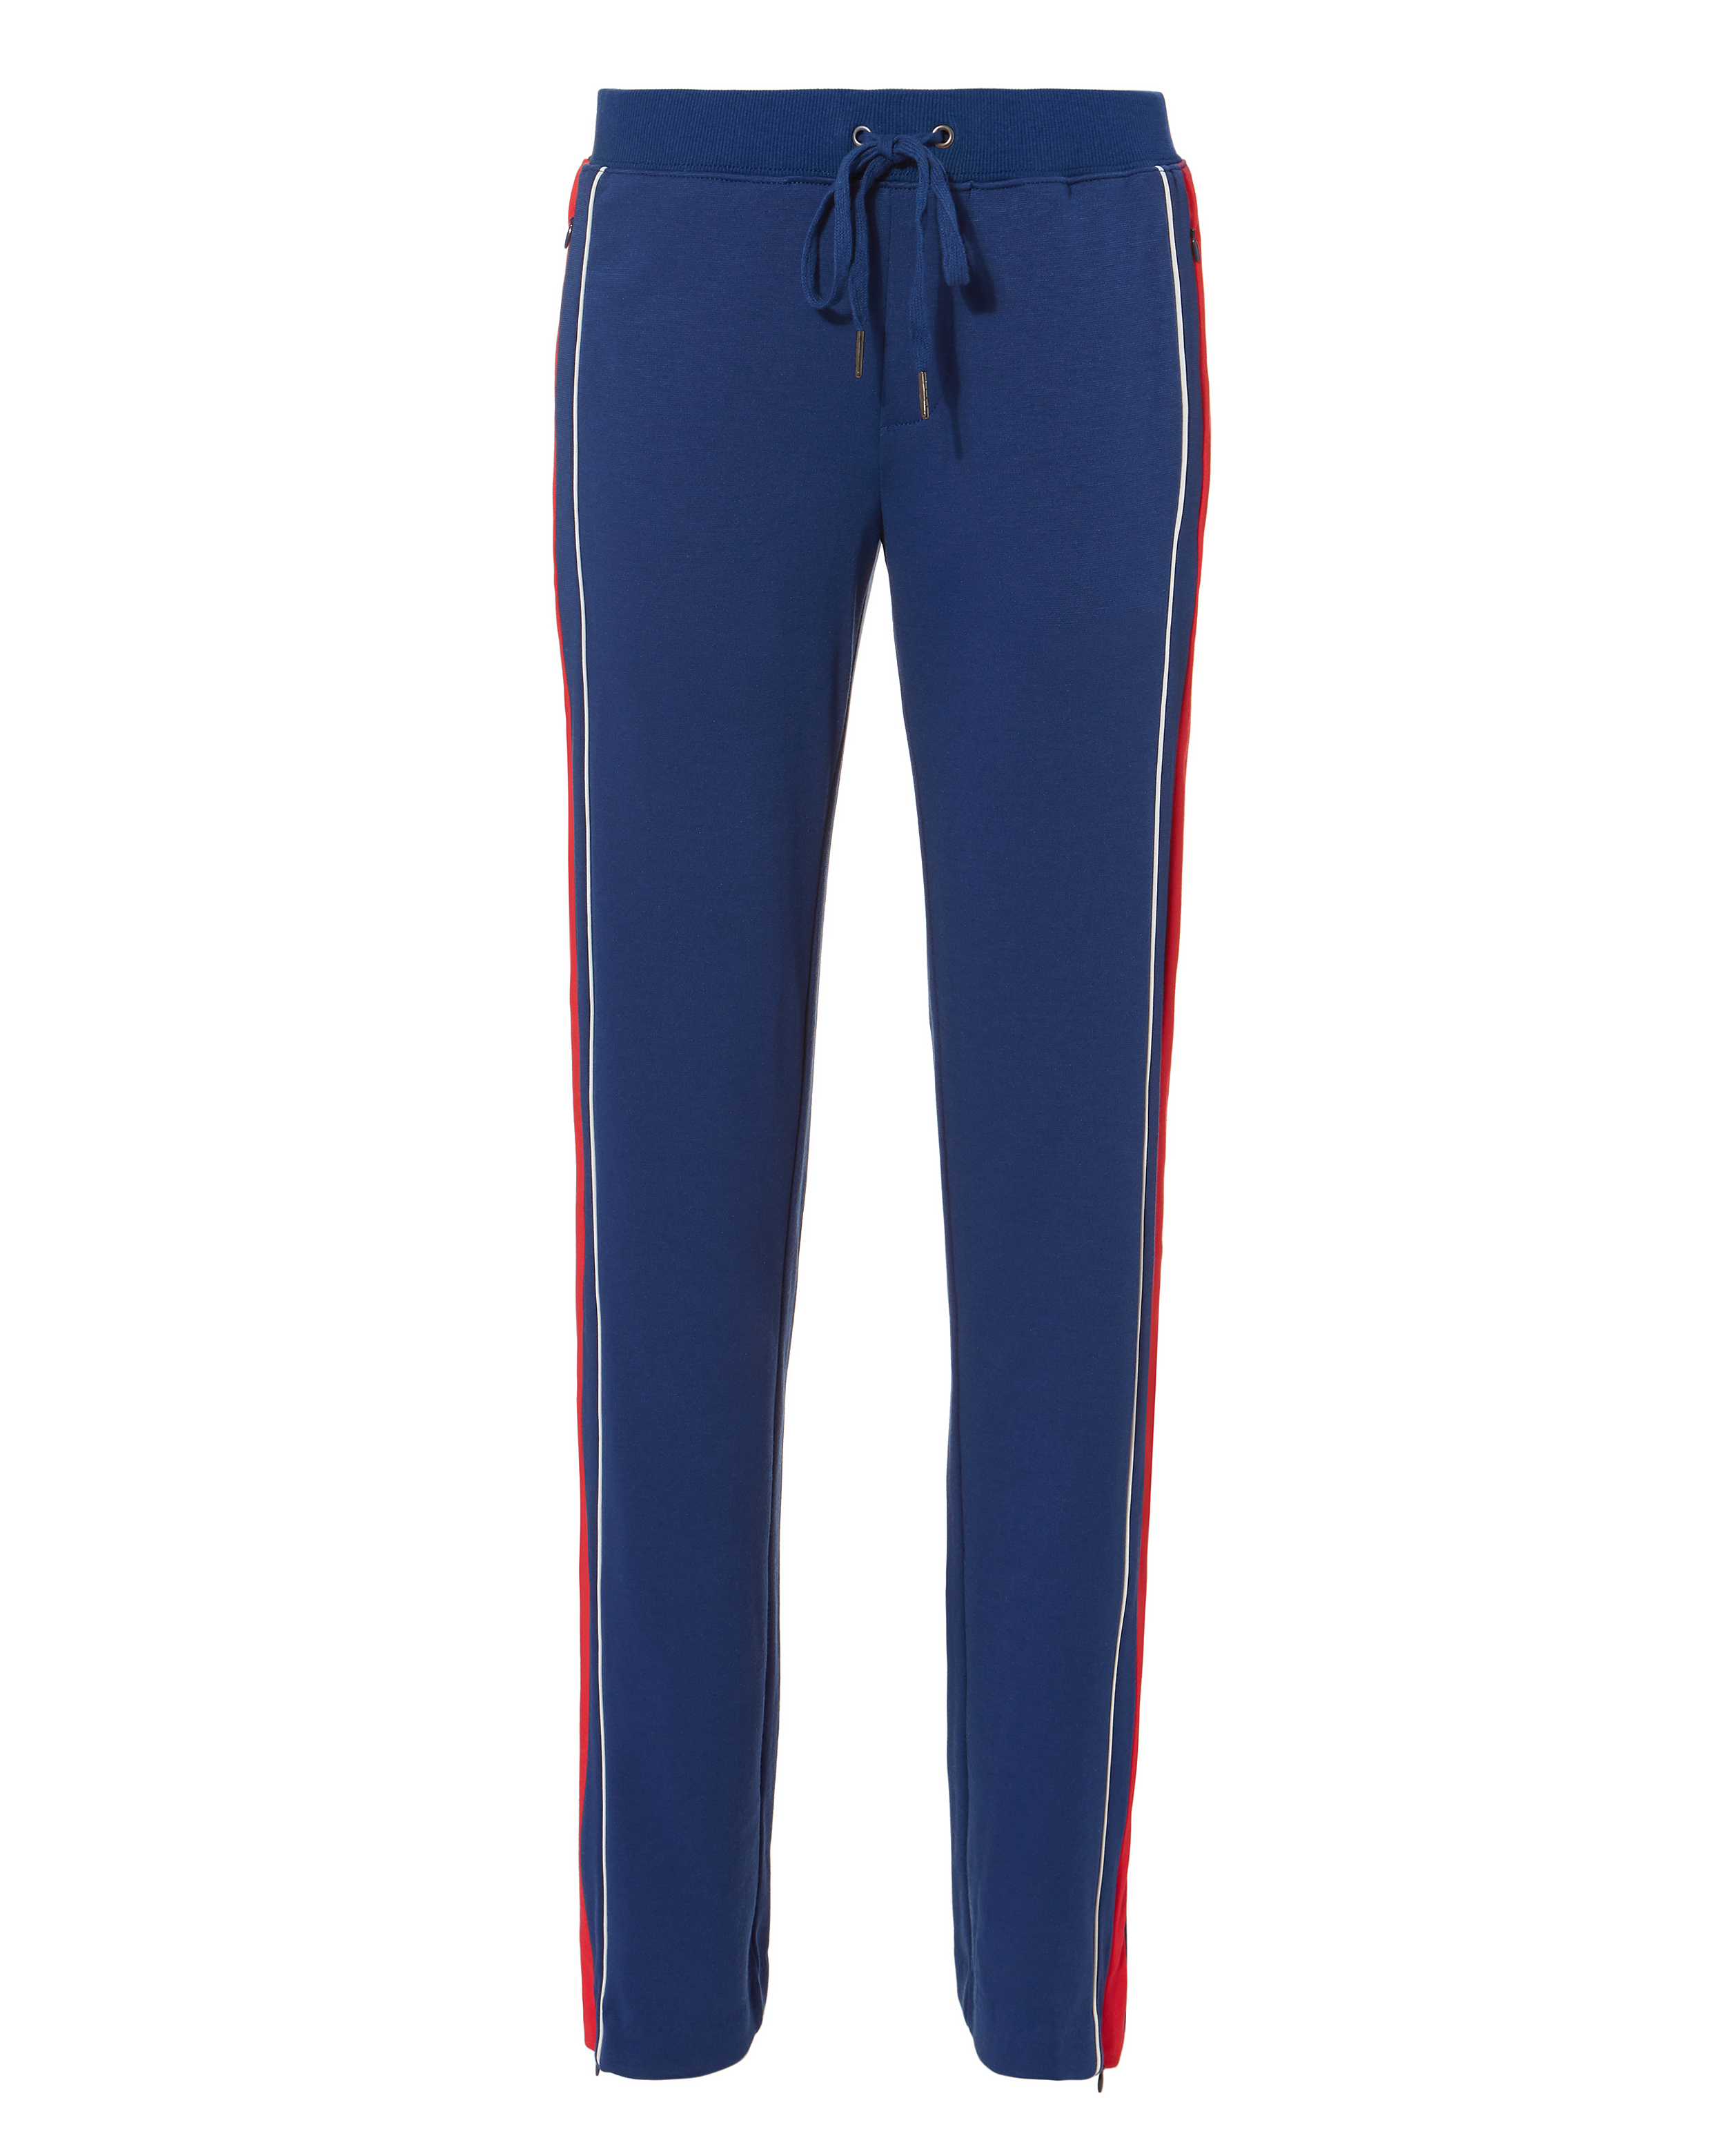 Colorblocked Track Pants